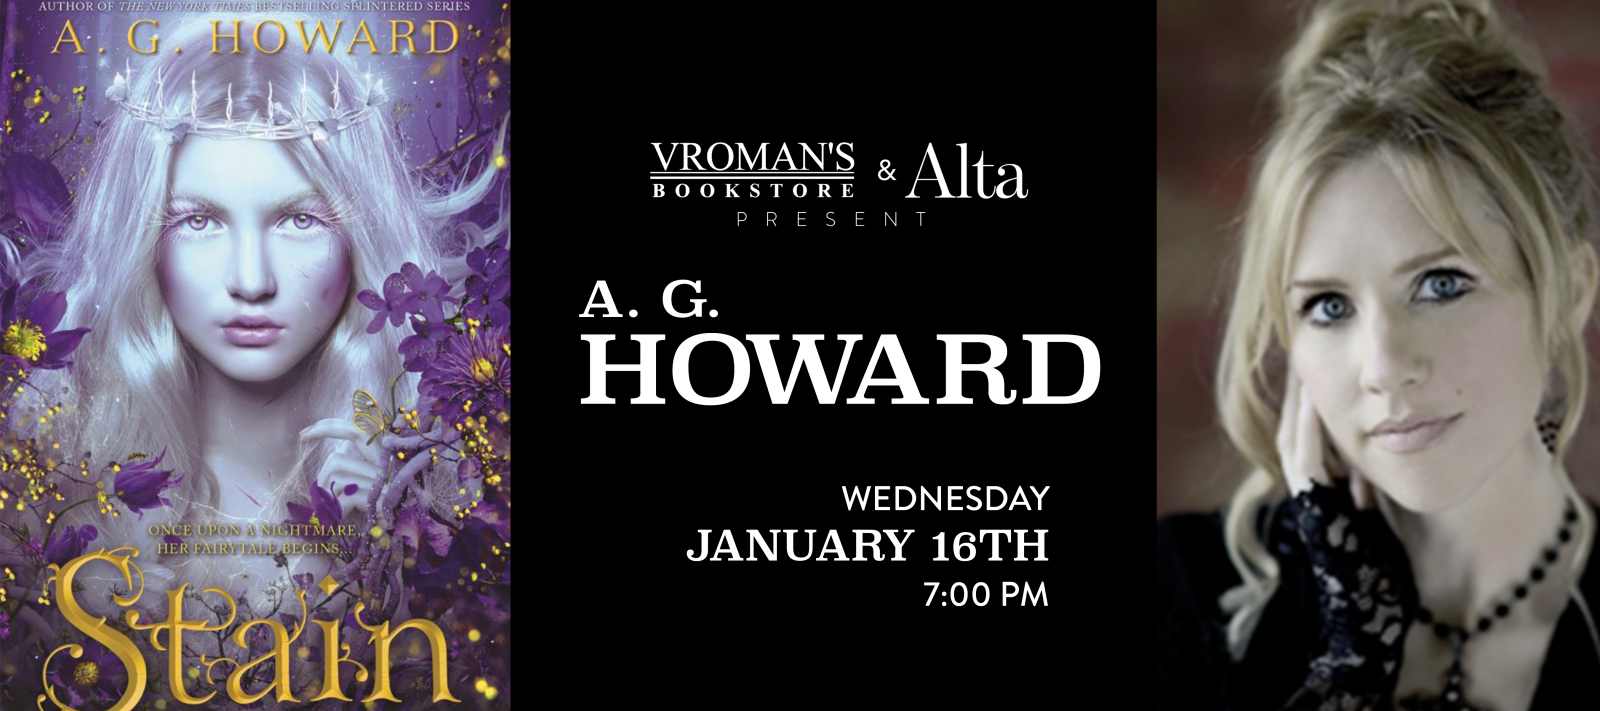 A.G. Howard Wednesday January 16th at 7pm